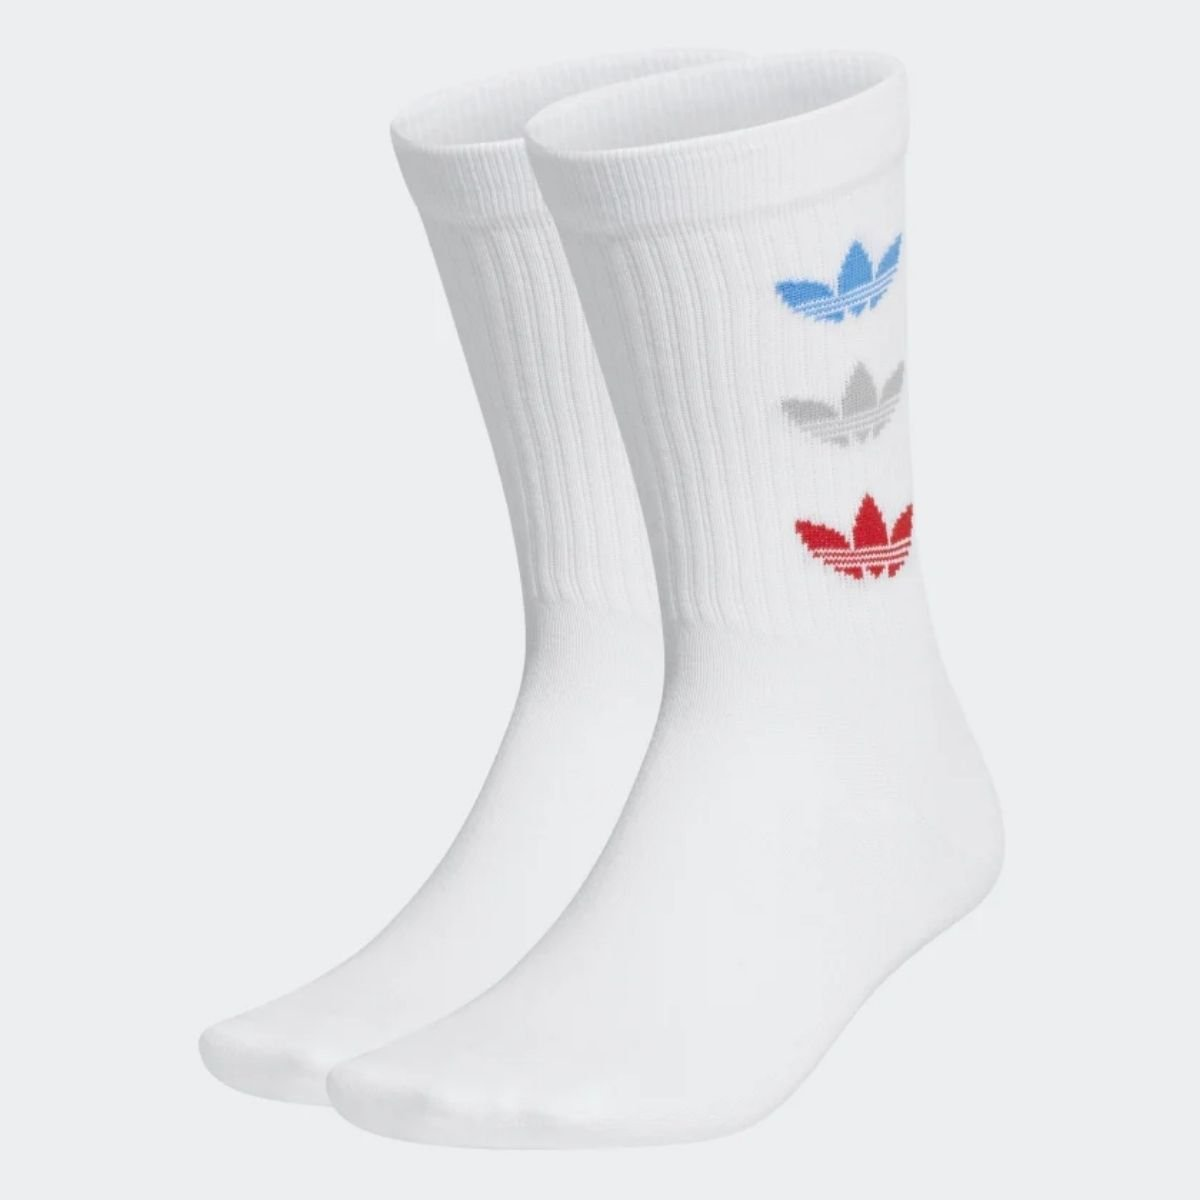 Calze Adidas Tricolor Thin...